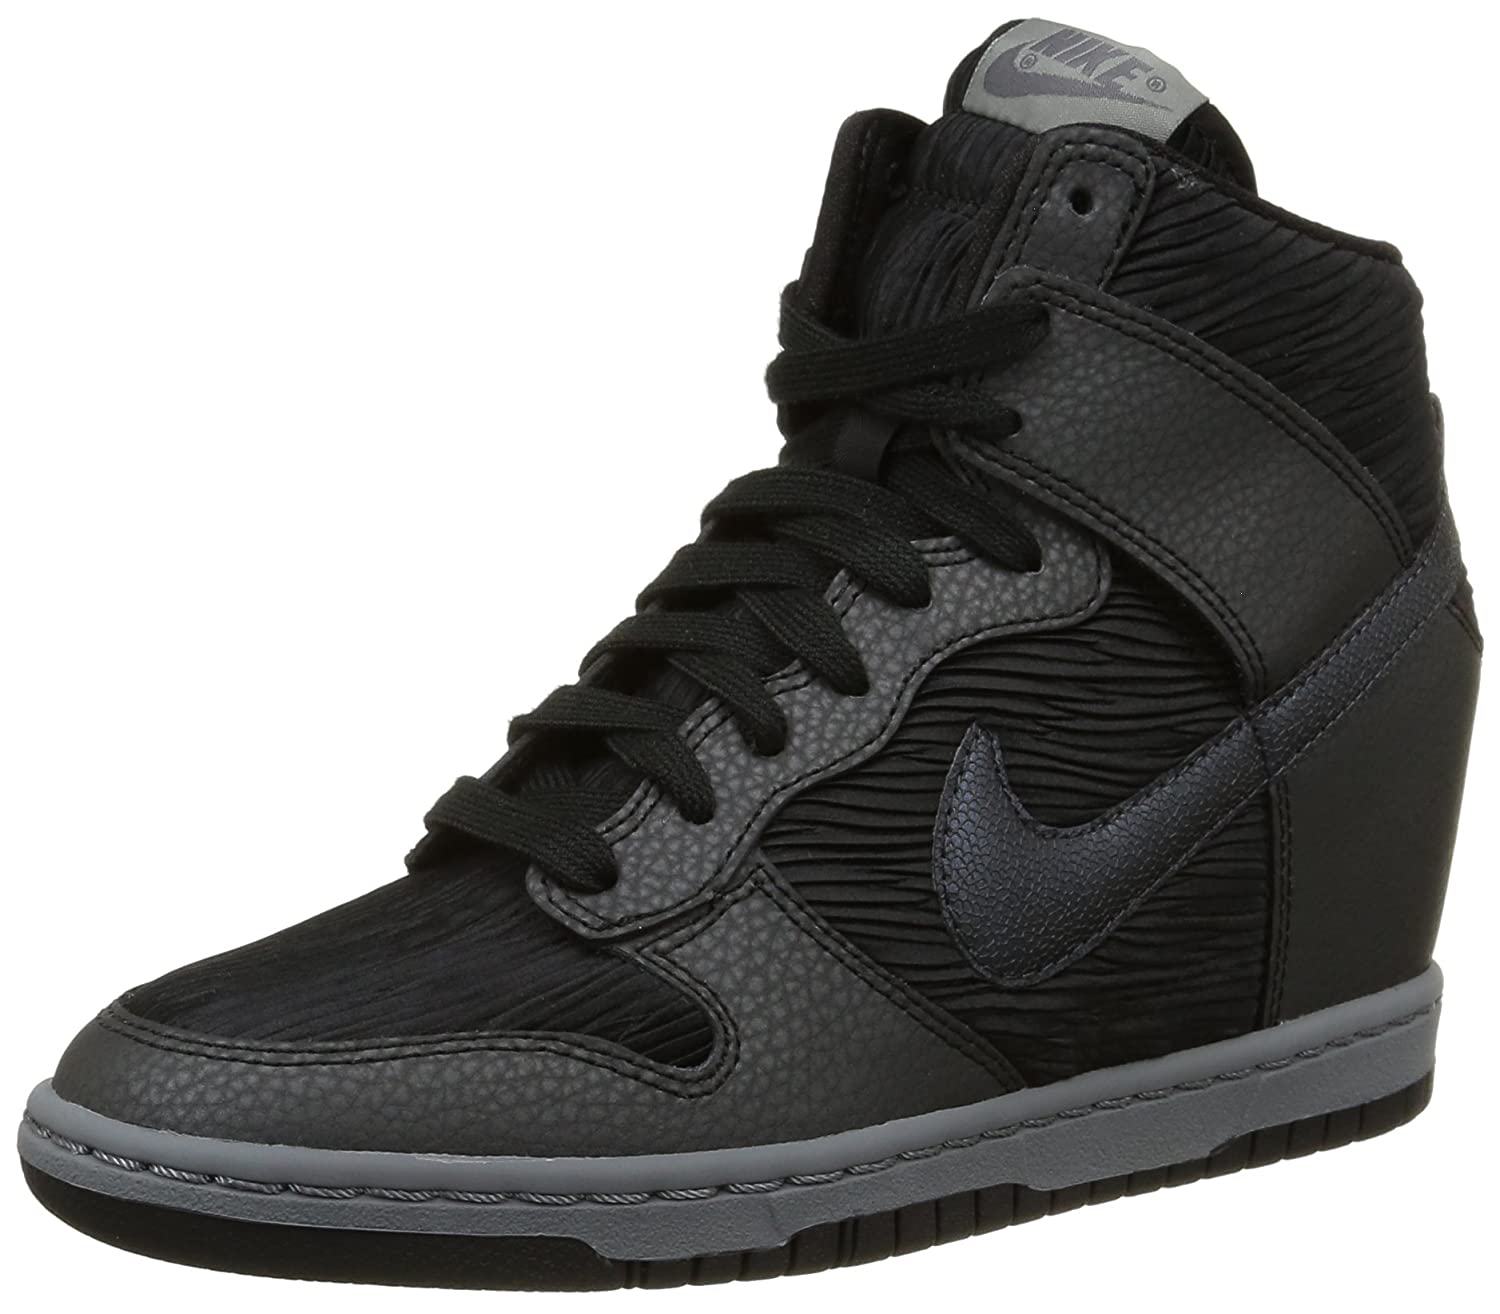 cheaper 92bc6 1f8d5 Amazon.com   Nike Women s Dunk Sky Hi Casual Shoe   Fashion Sneakers